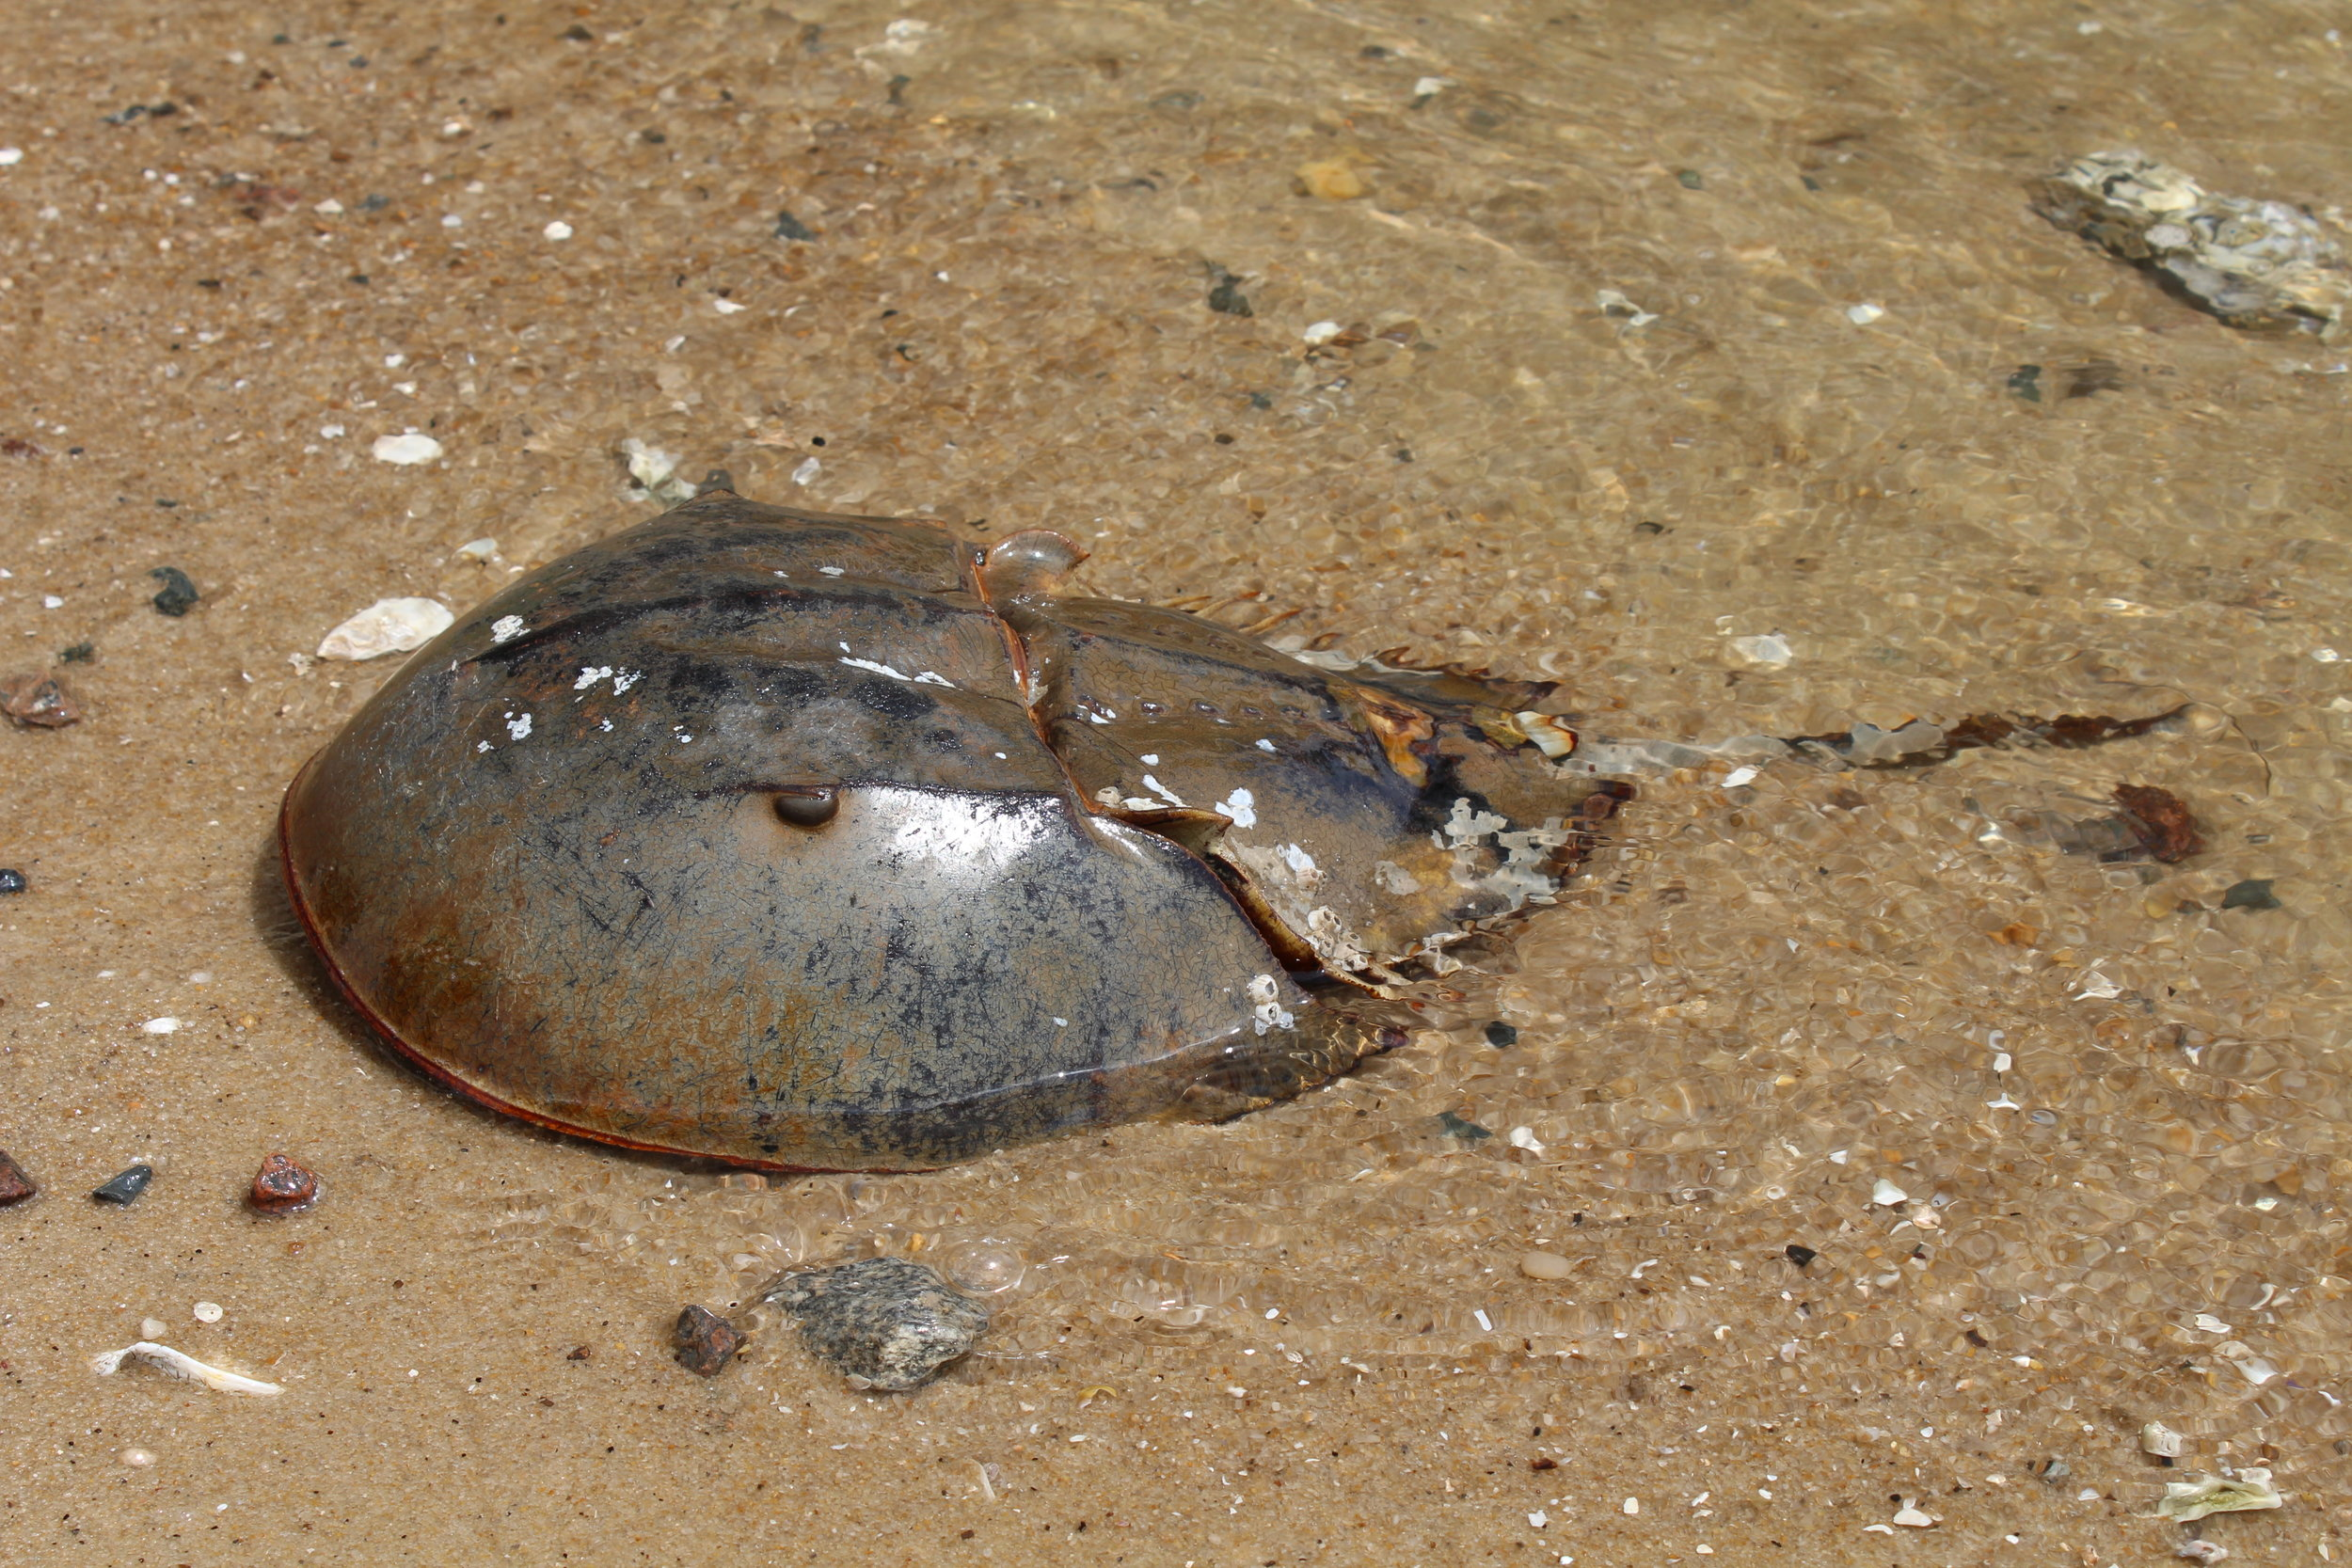 This crab is facing right-side up. (Photo: E. Weeks/SCDNR)